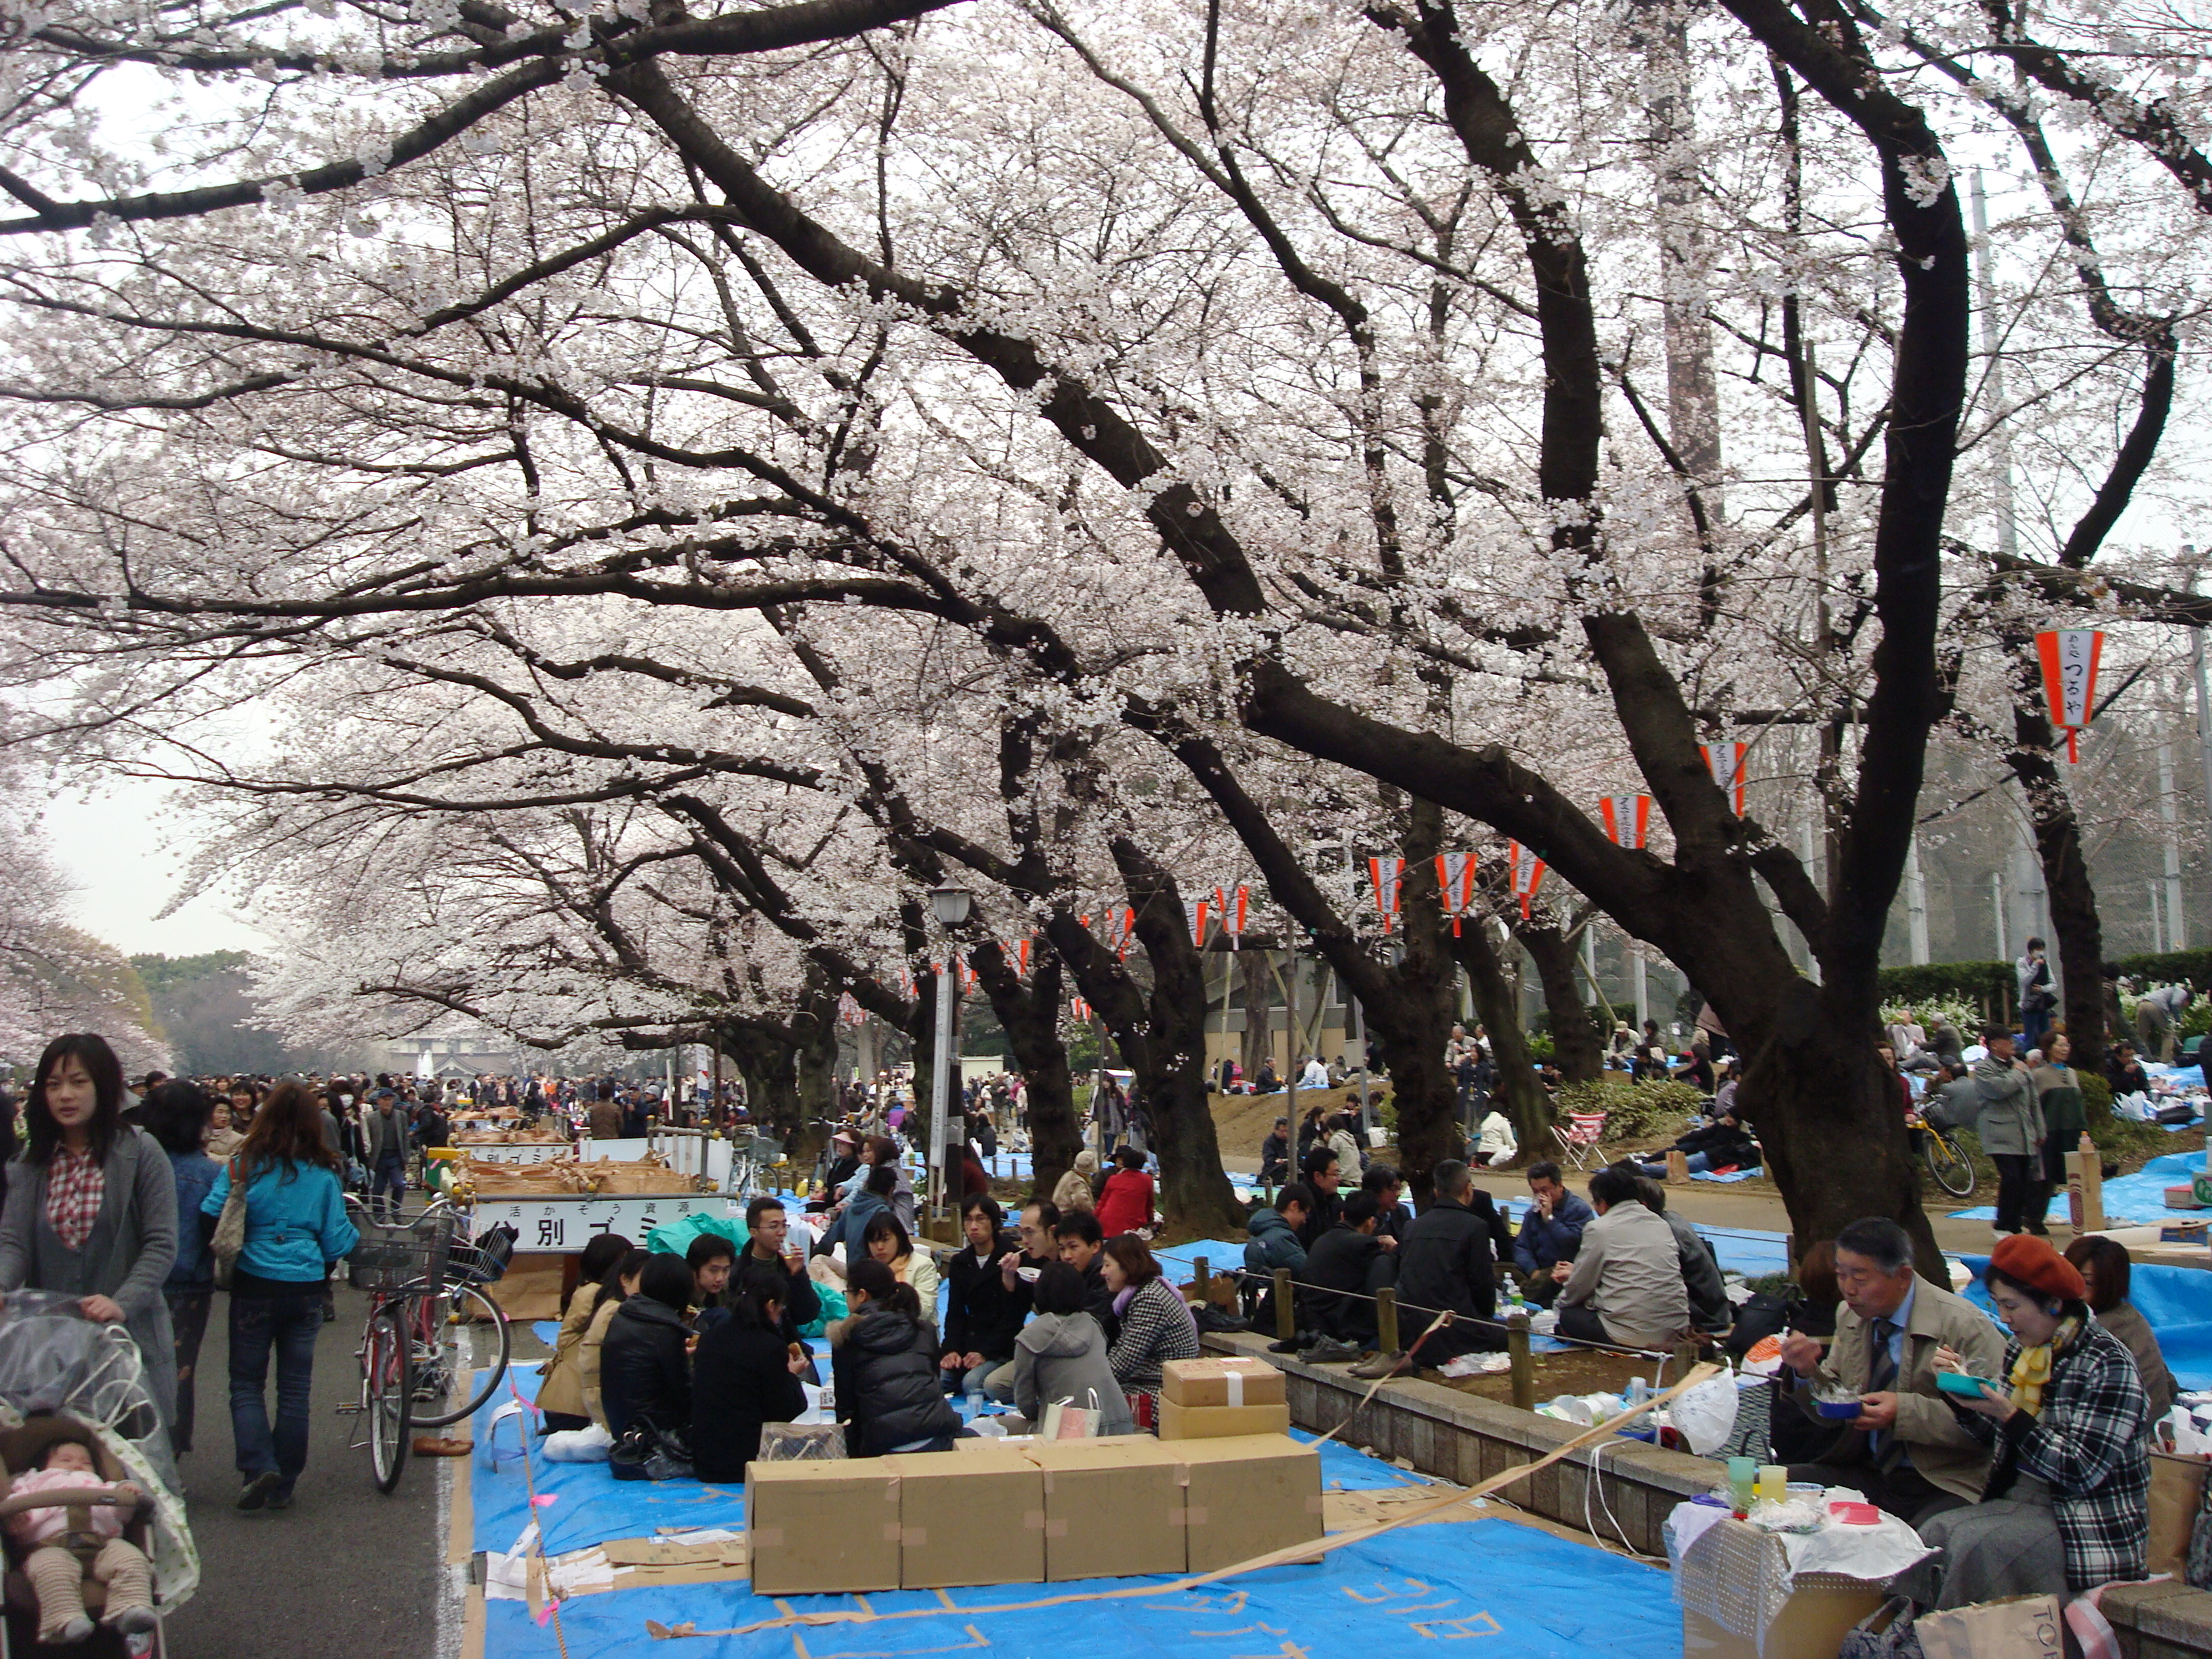 cherry blossom parties in ueno park tokyo japan